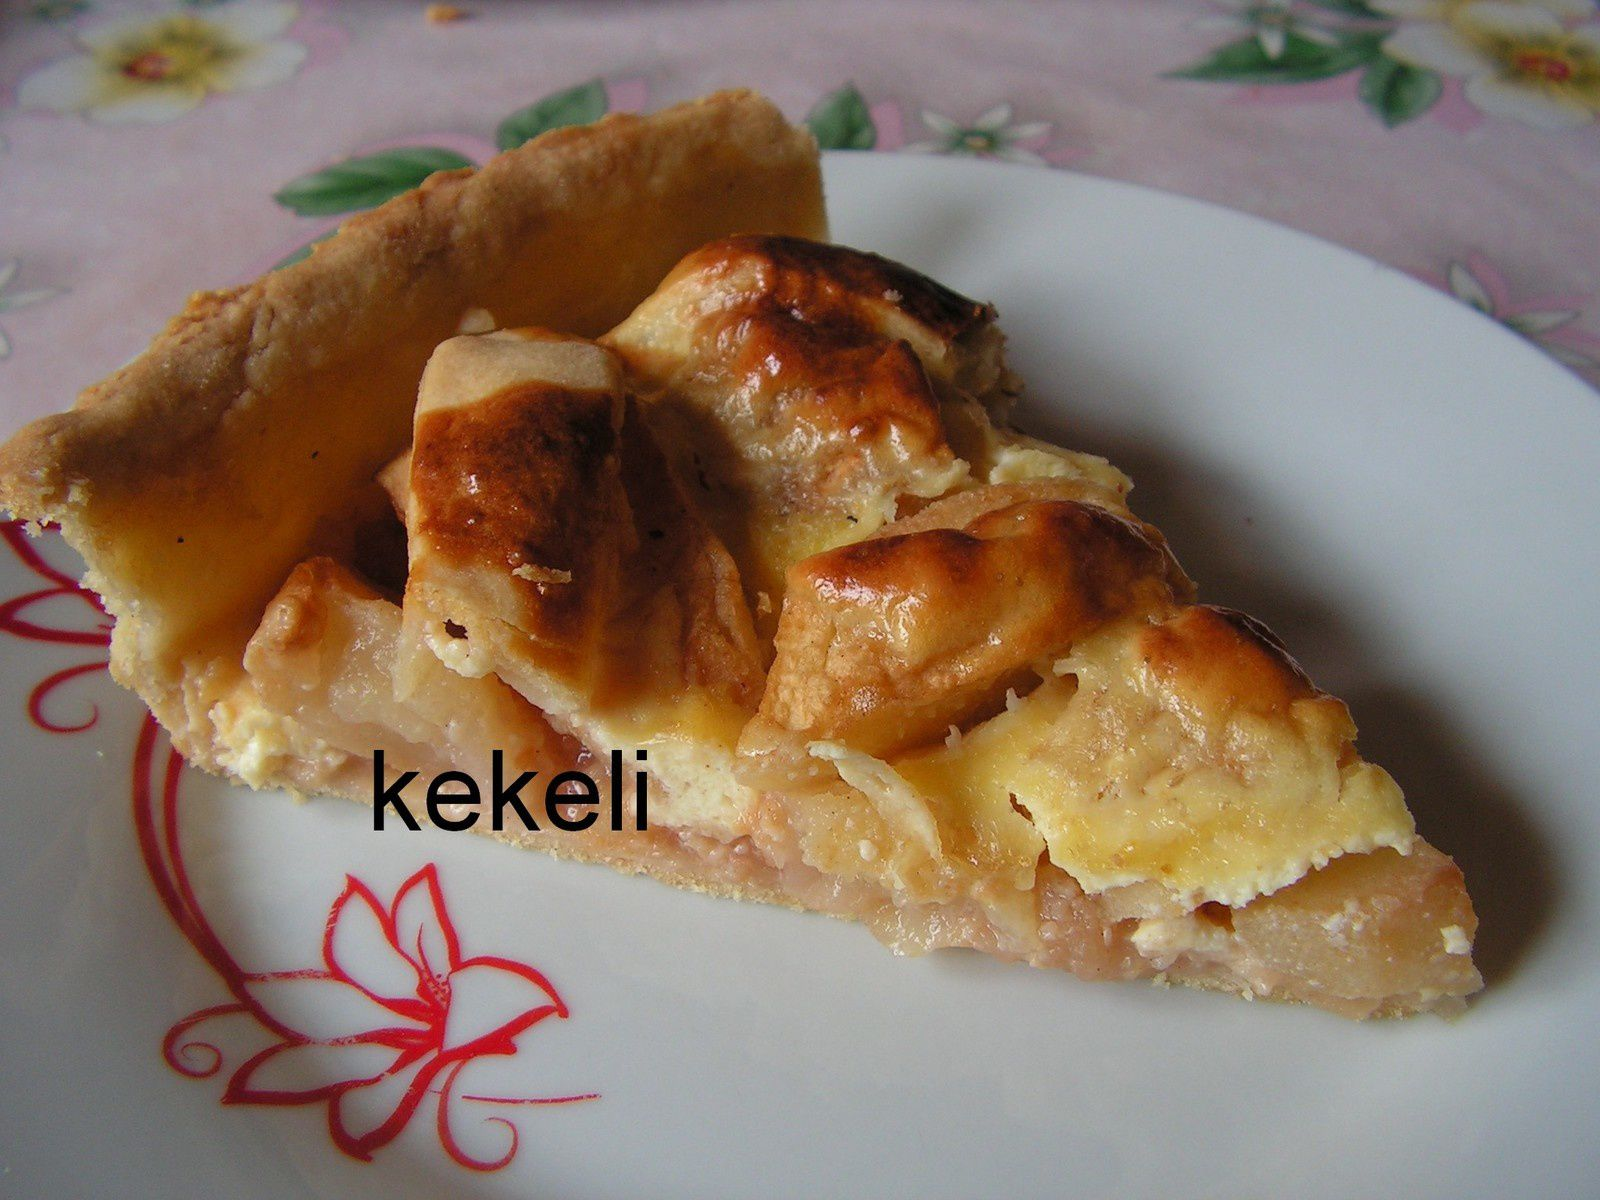 tarte aux pommes avec compote le blog de kekeli. Black Bedroom Furniture Sets. Home Design Ideas